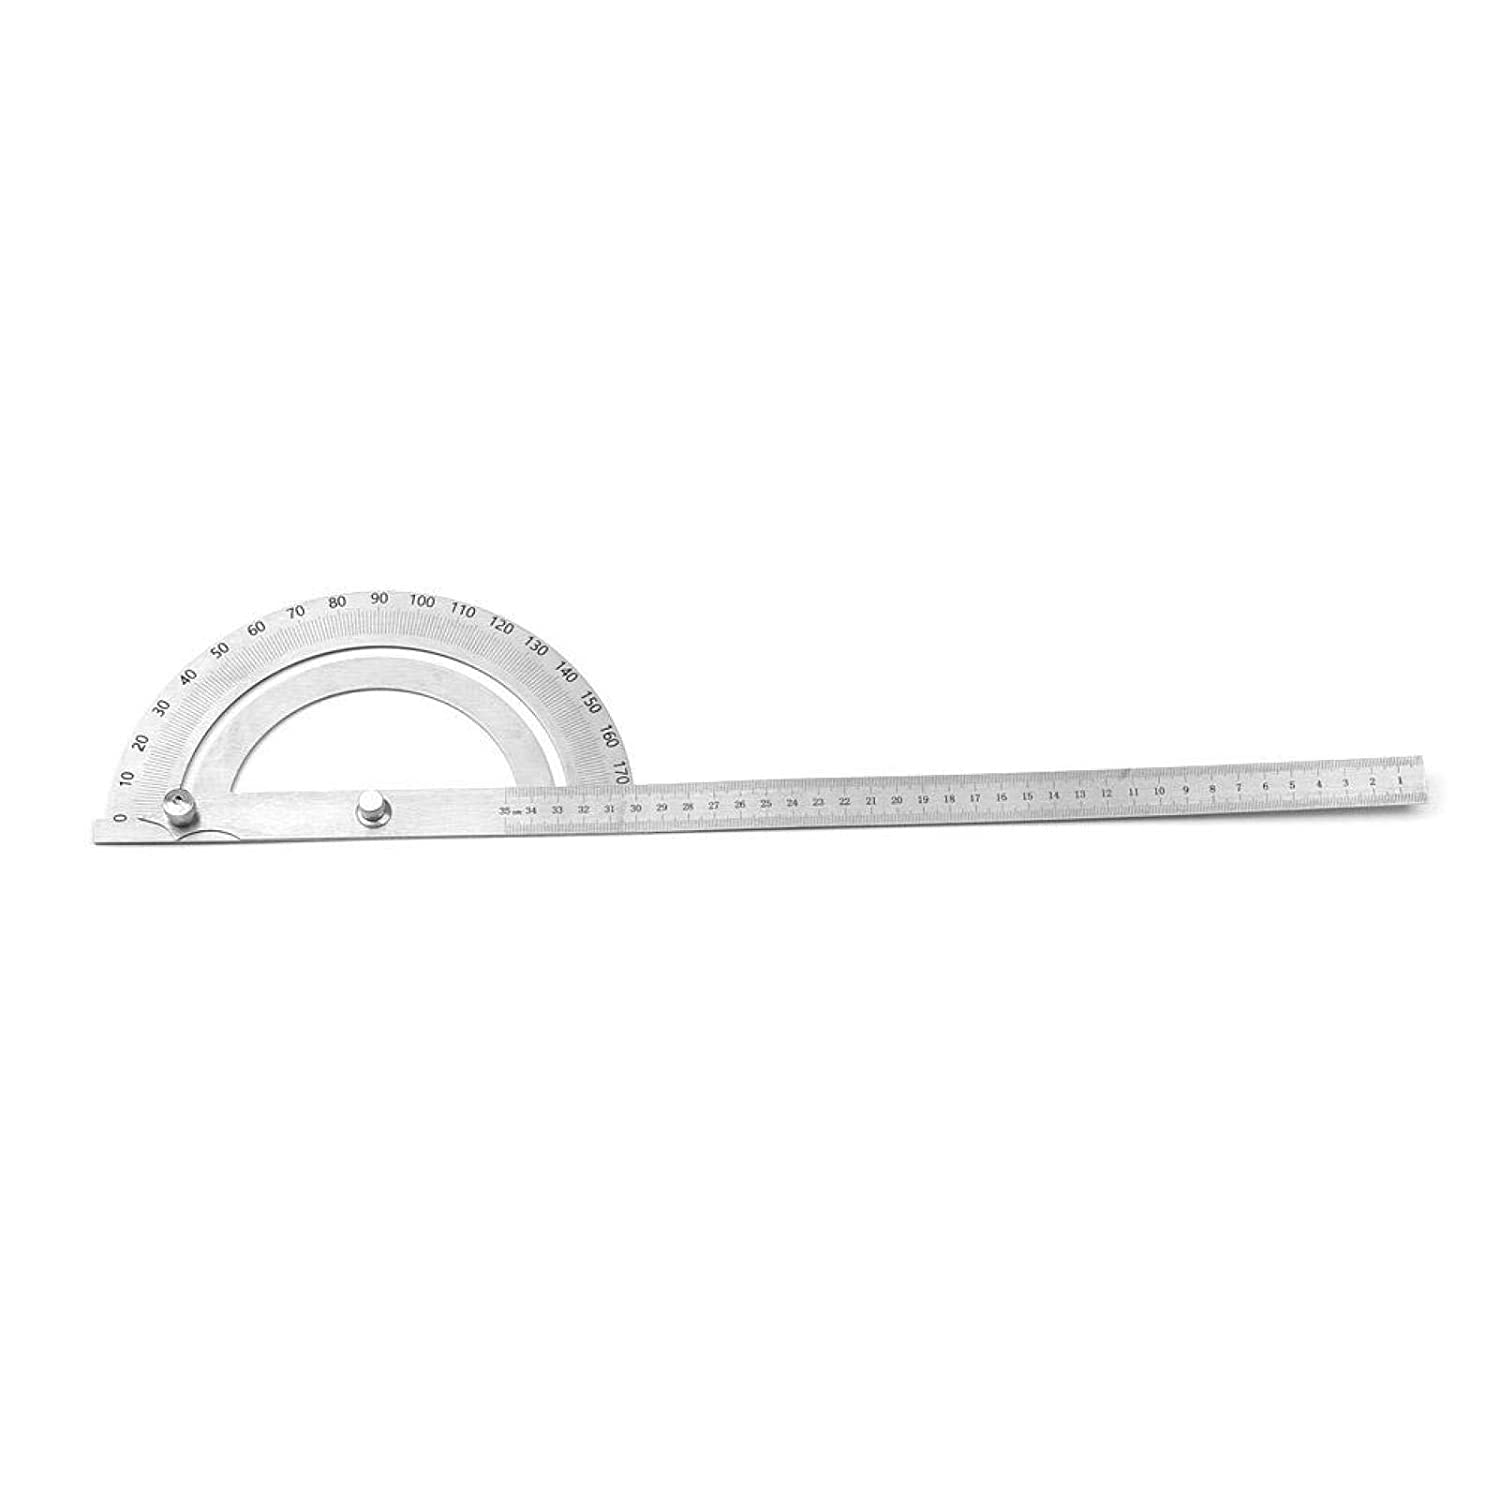 Sturdy Stainless Steel 1Pcs Protractor Degree Bombing free All items in the store shipping Rotary